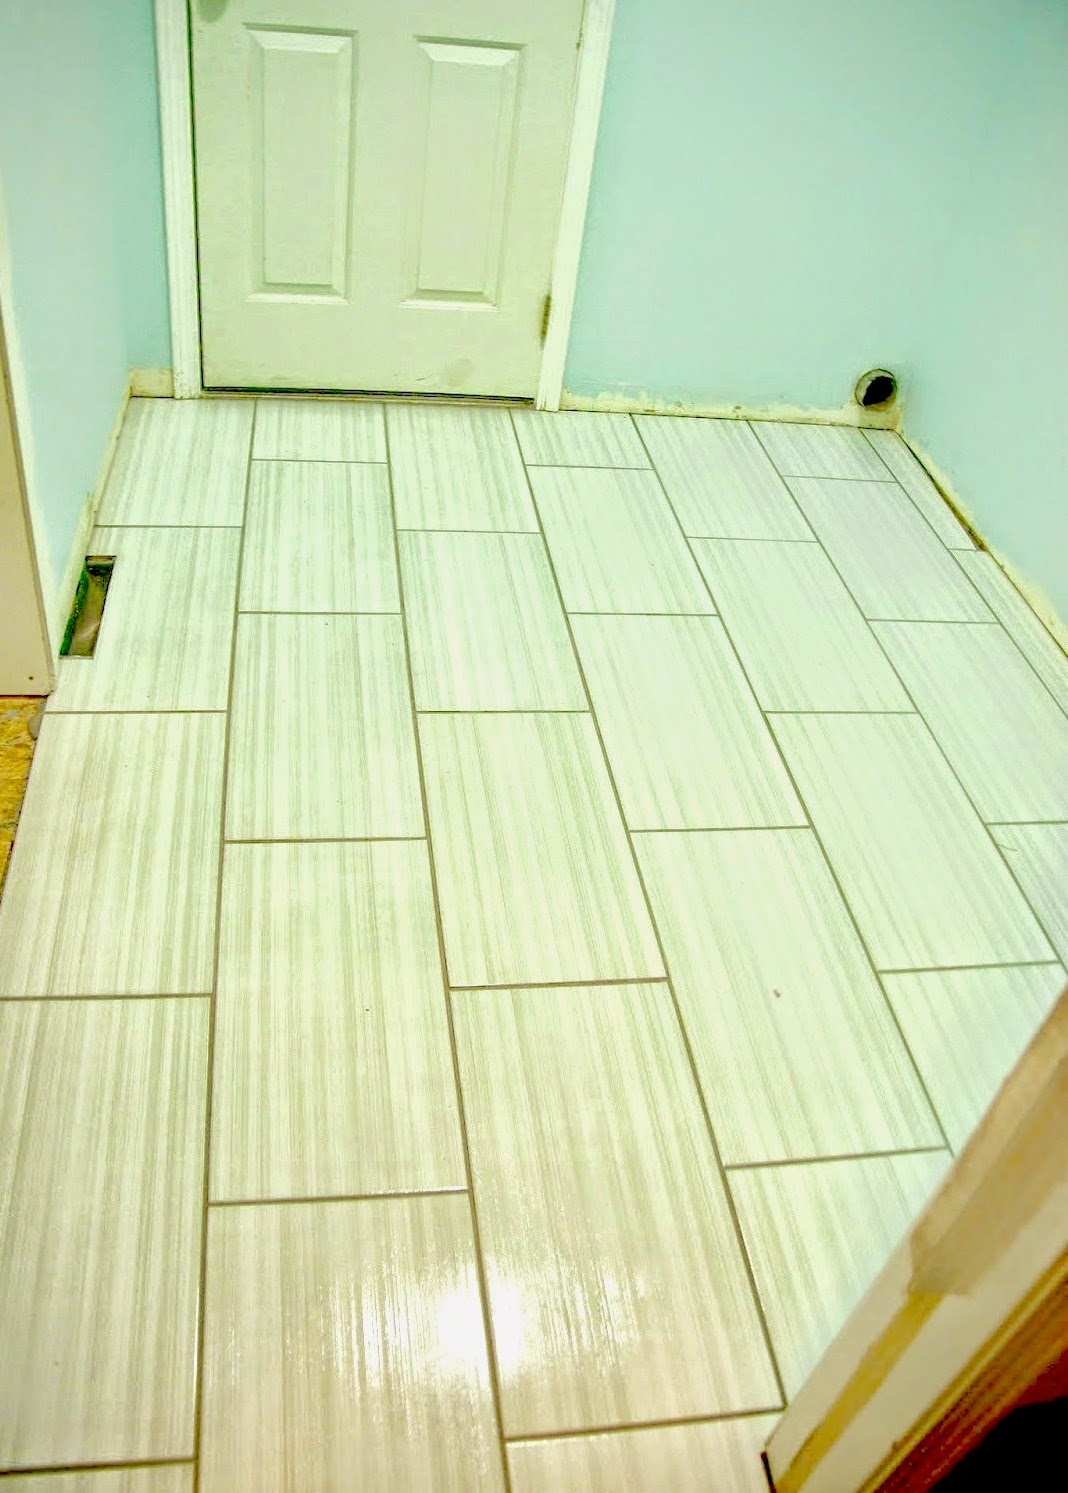 Tiling the laundry room